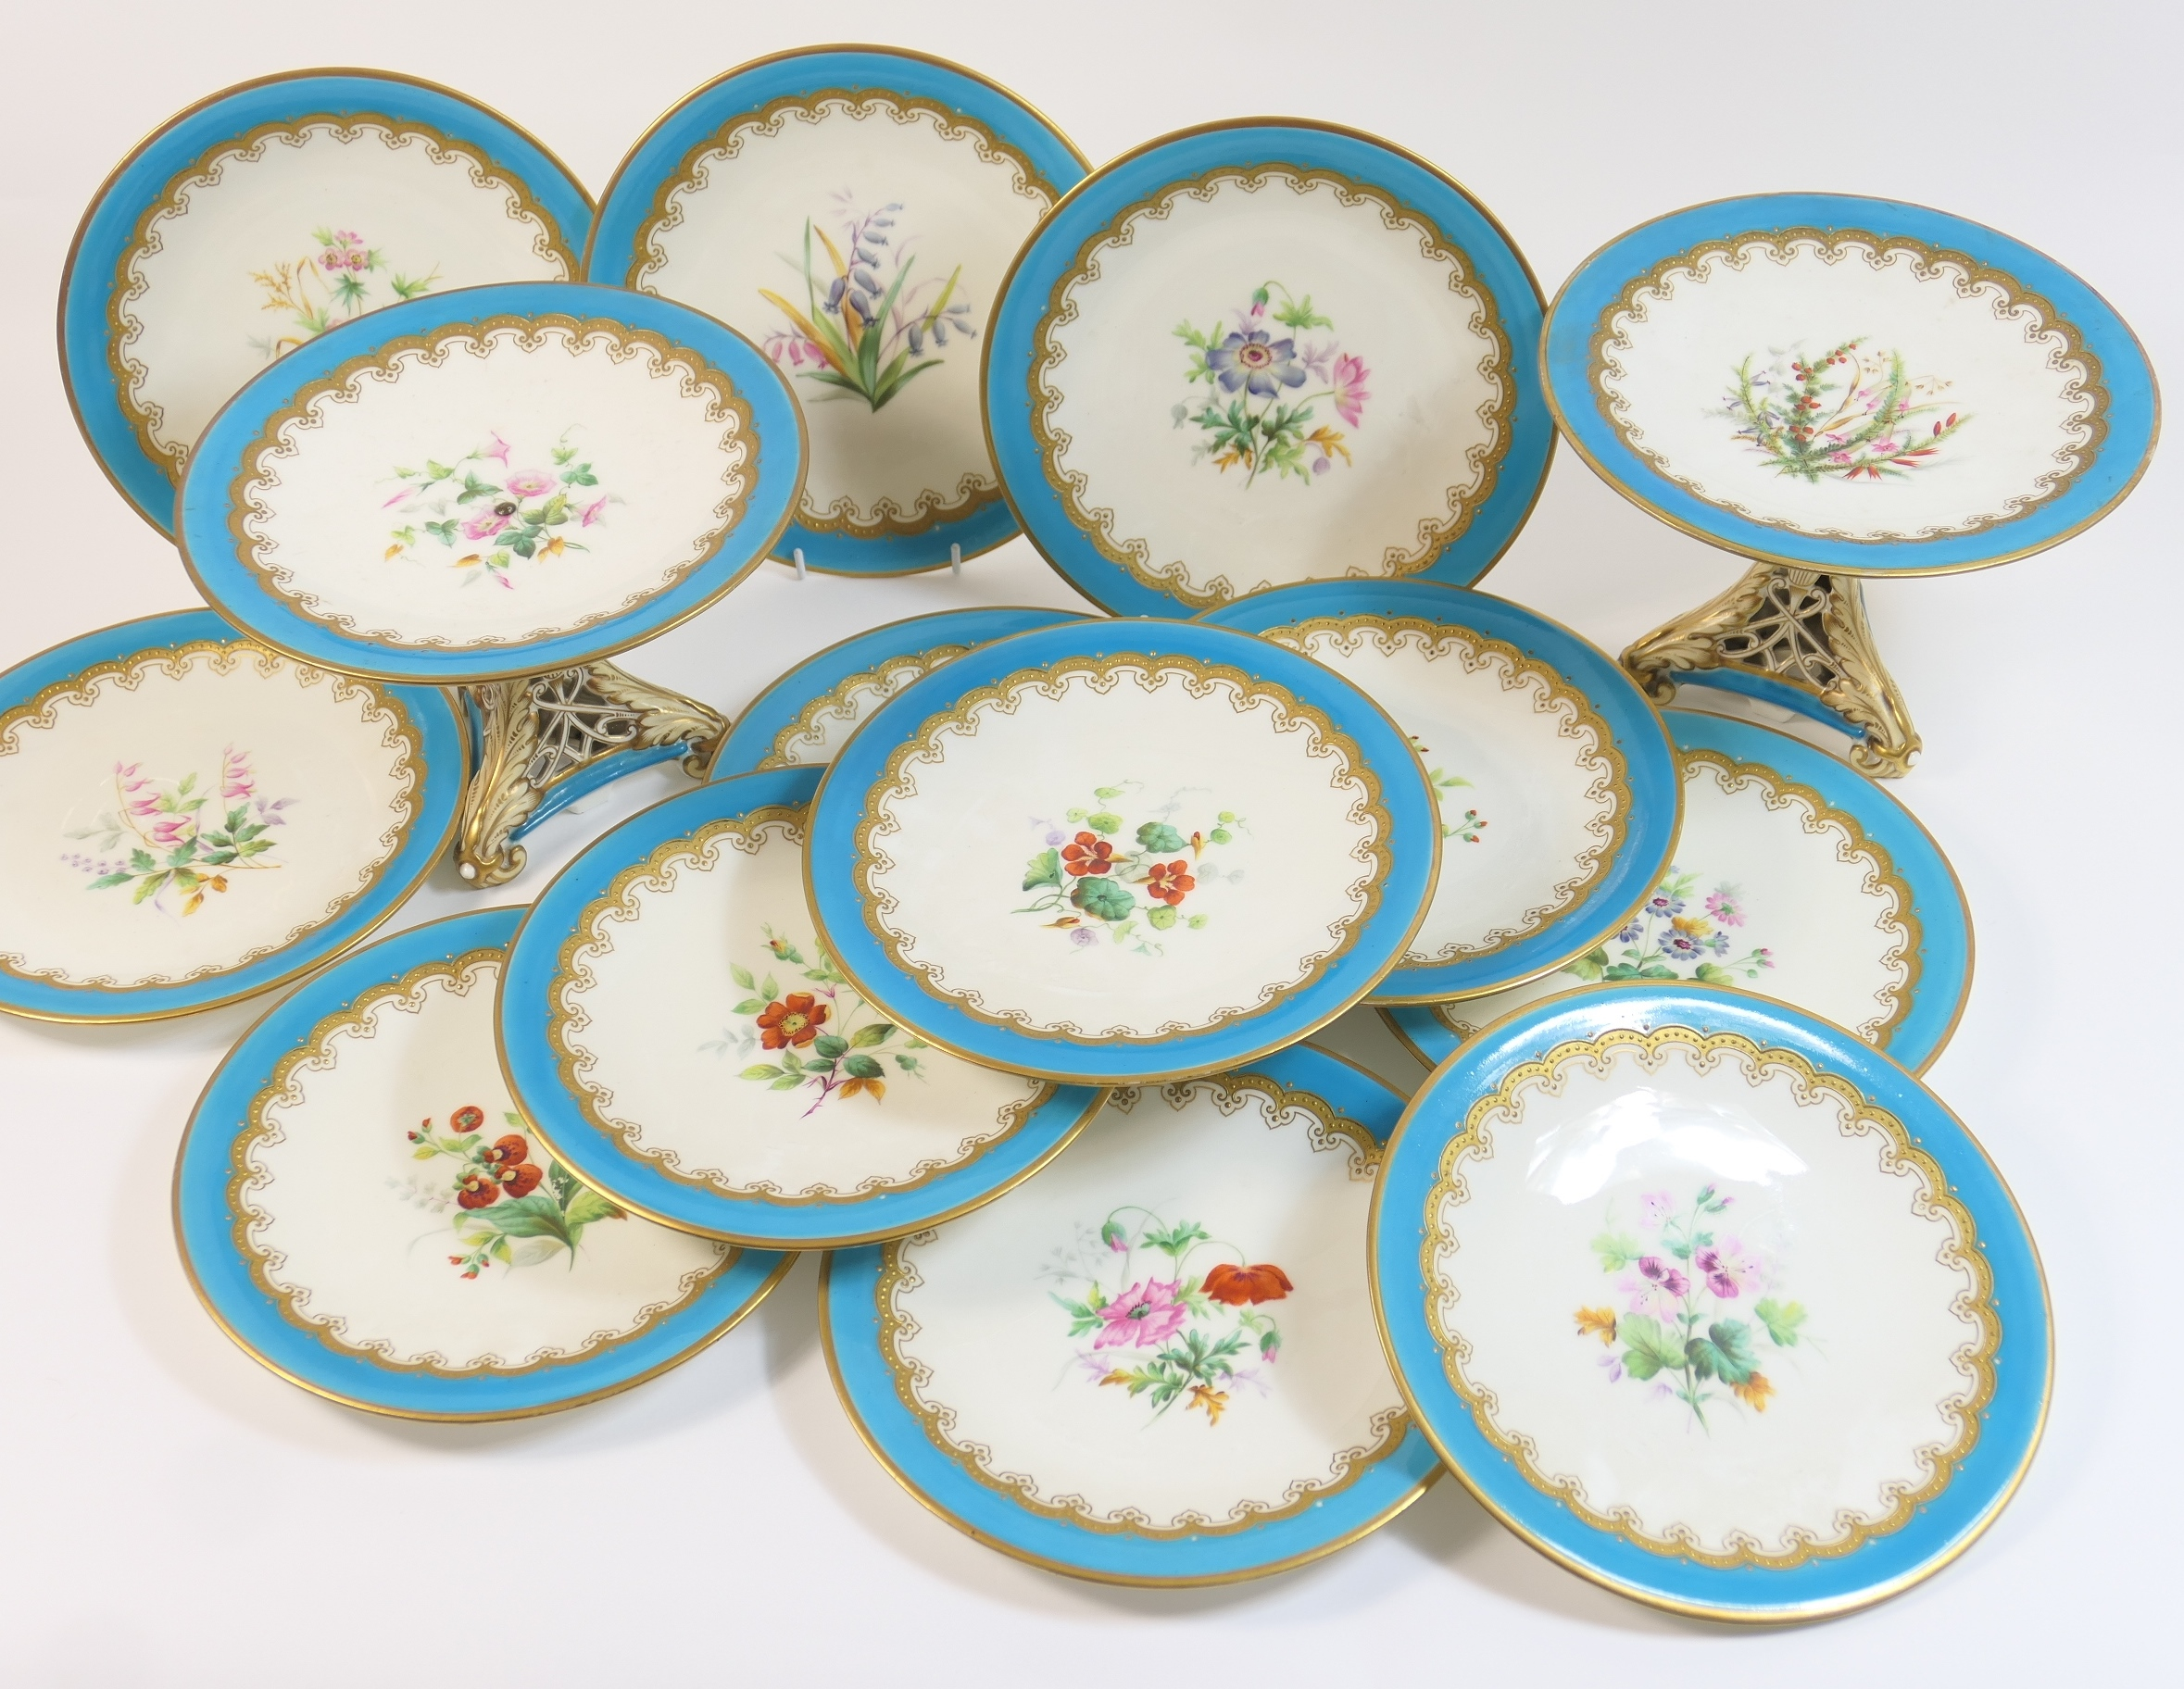 Lot 43 - Victorian china dessert service, circa 1870, comprising two tall comports and twelve dessert plates,